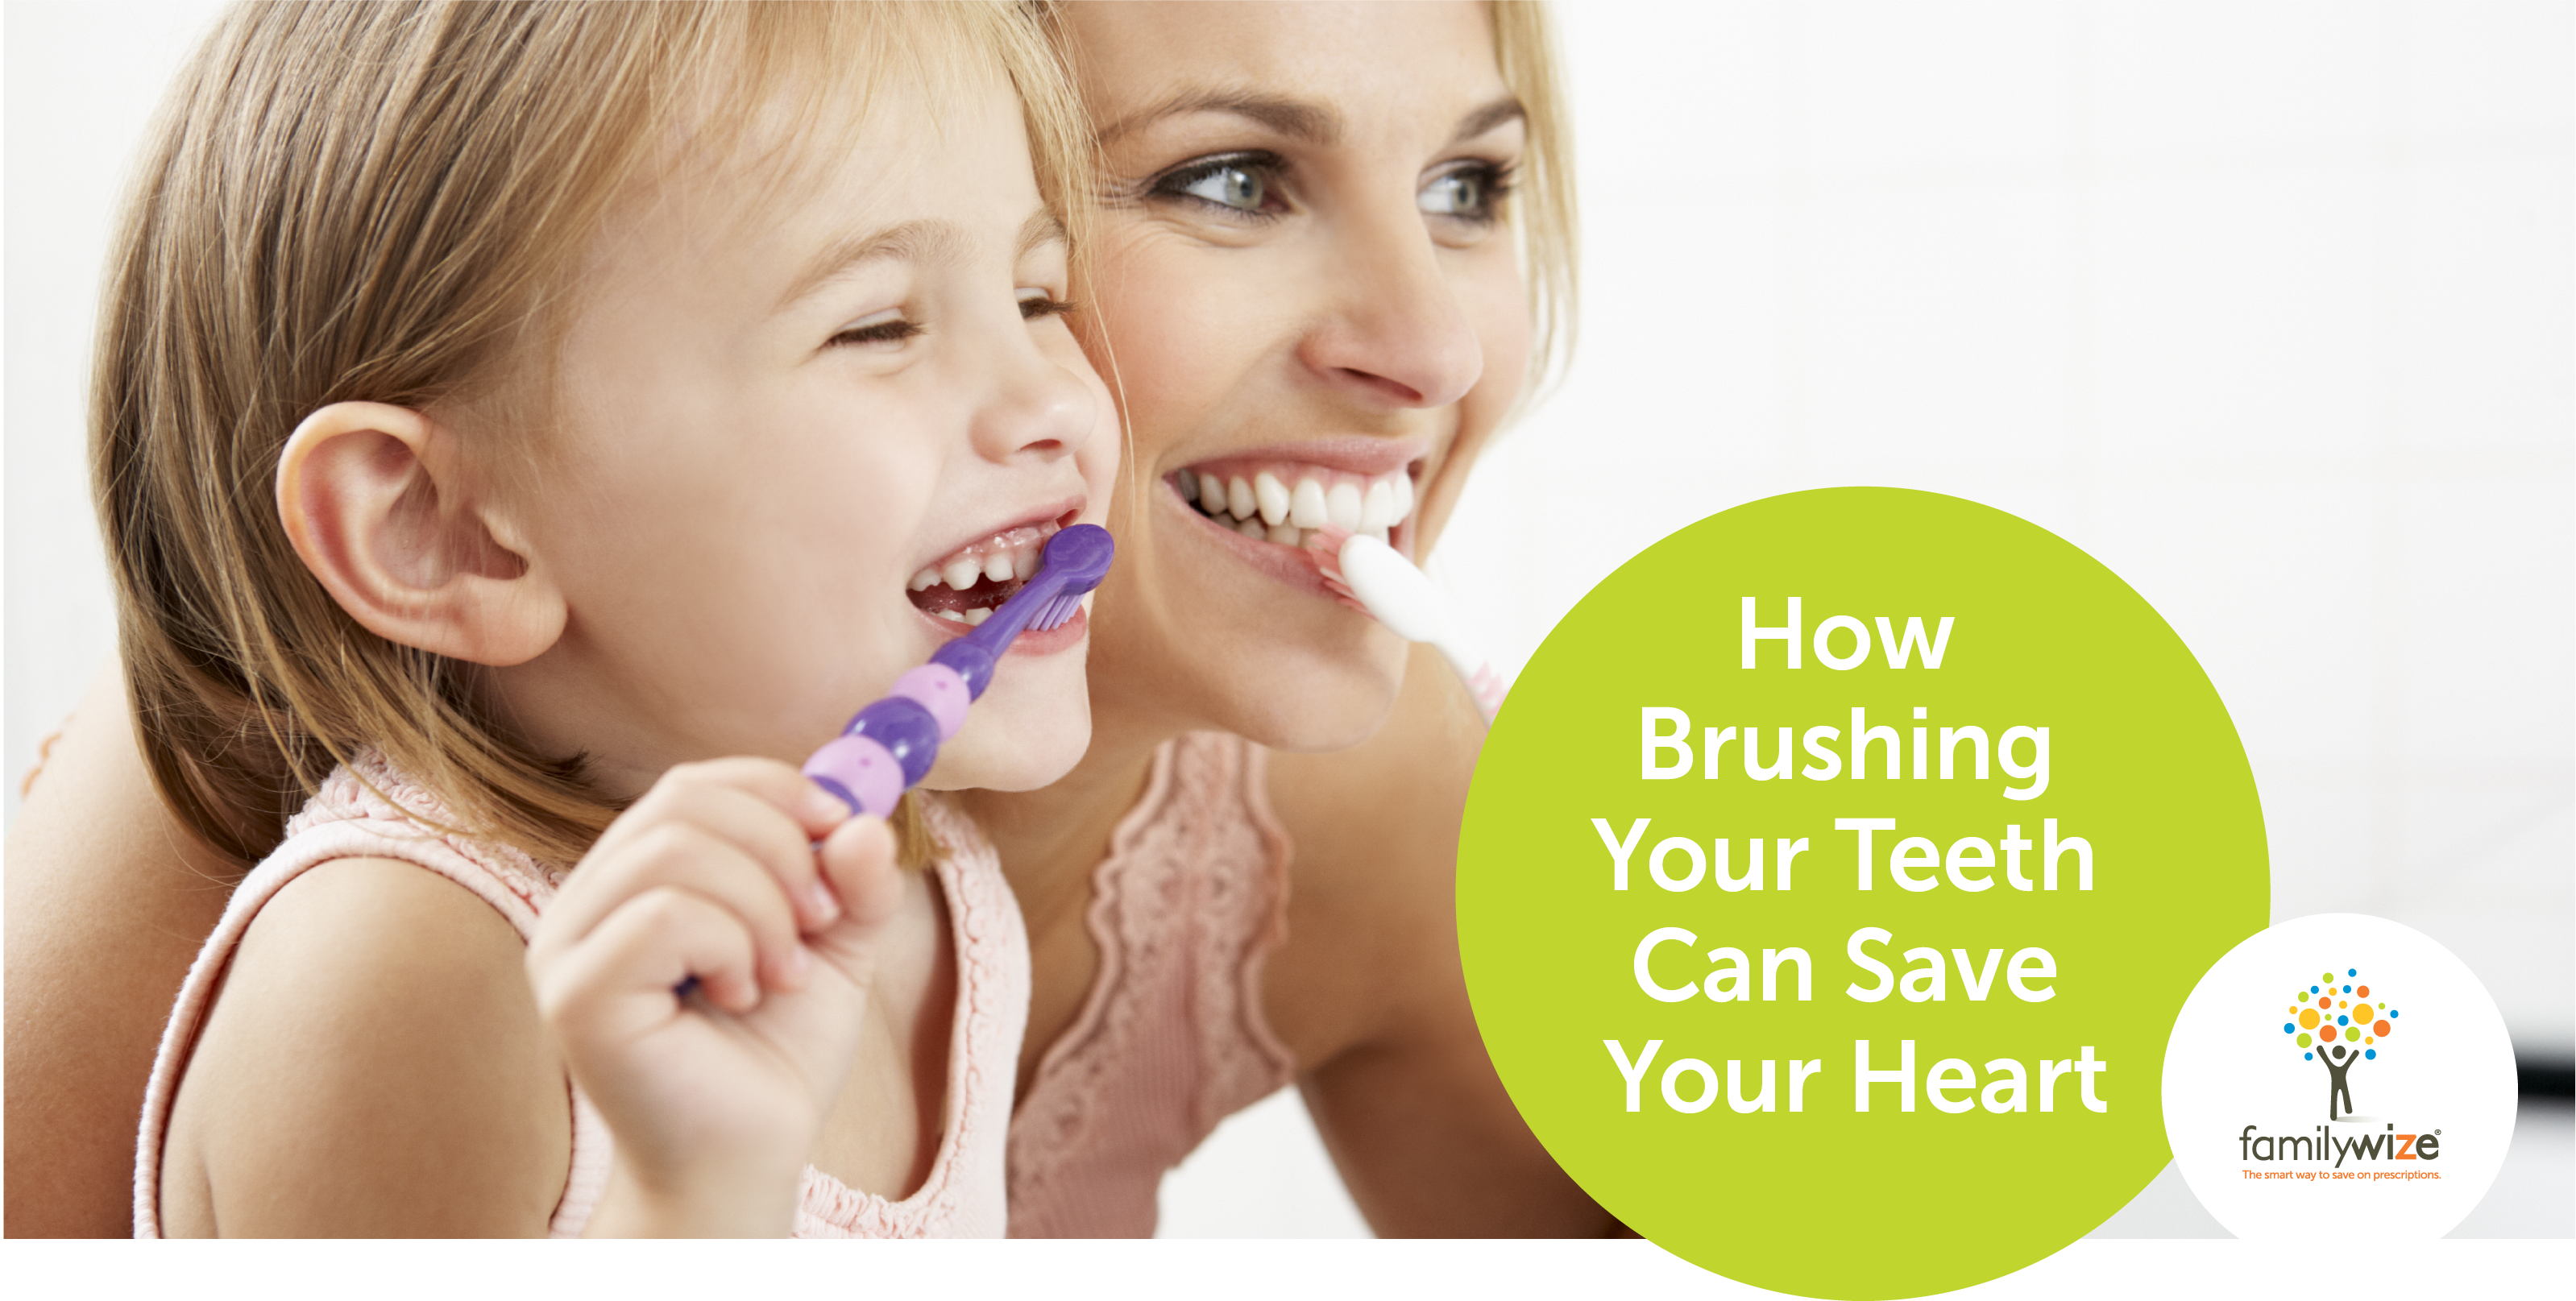 How Brushing Your Teeth Can Save Your Health